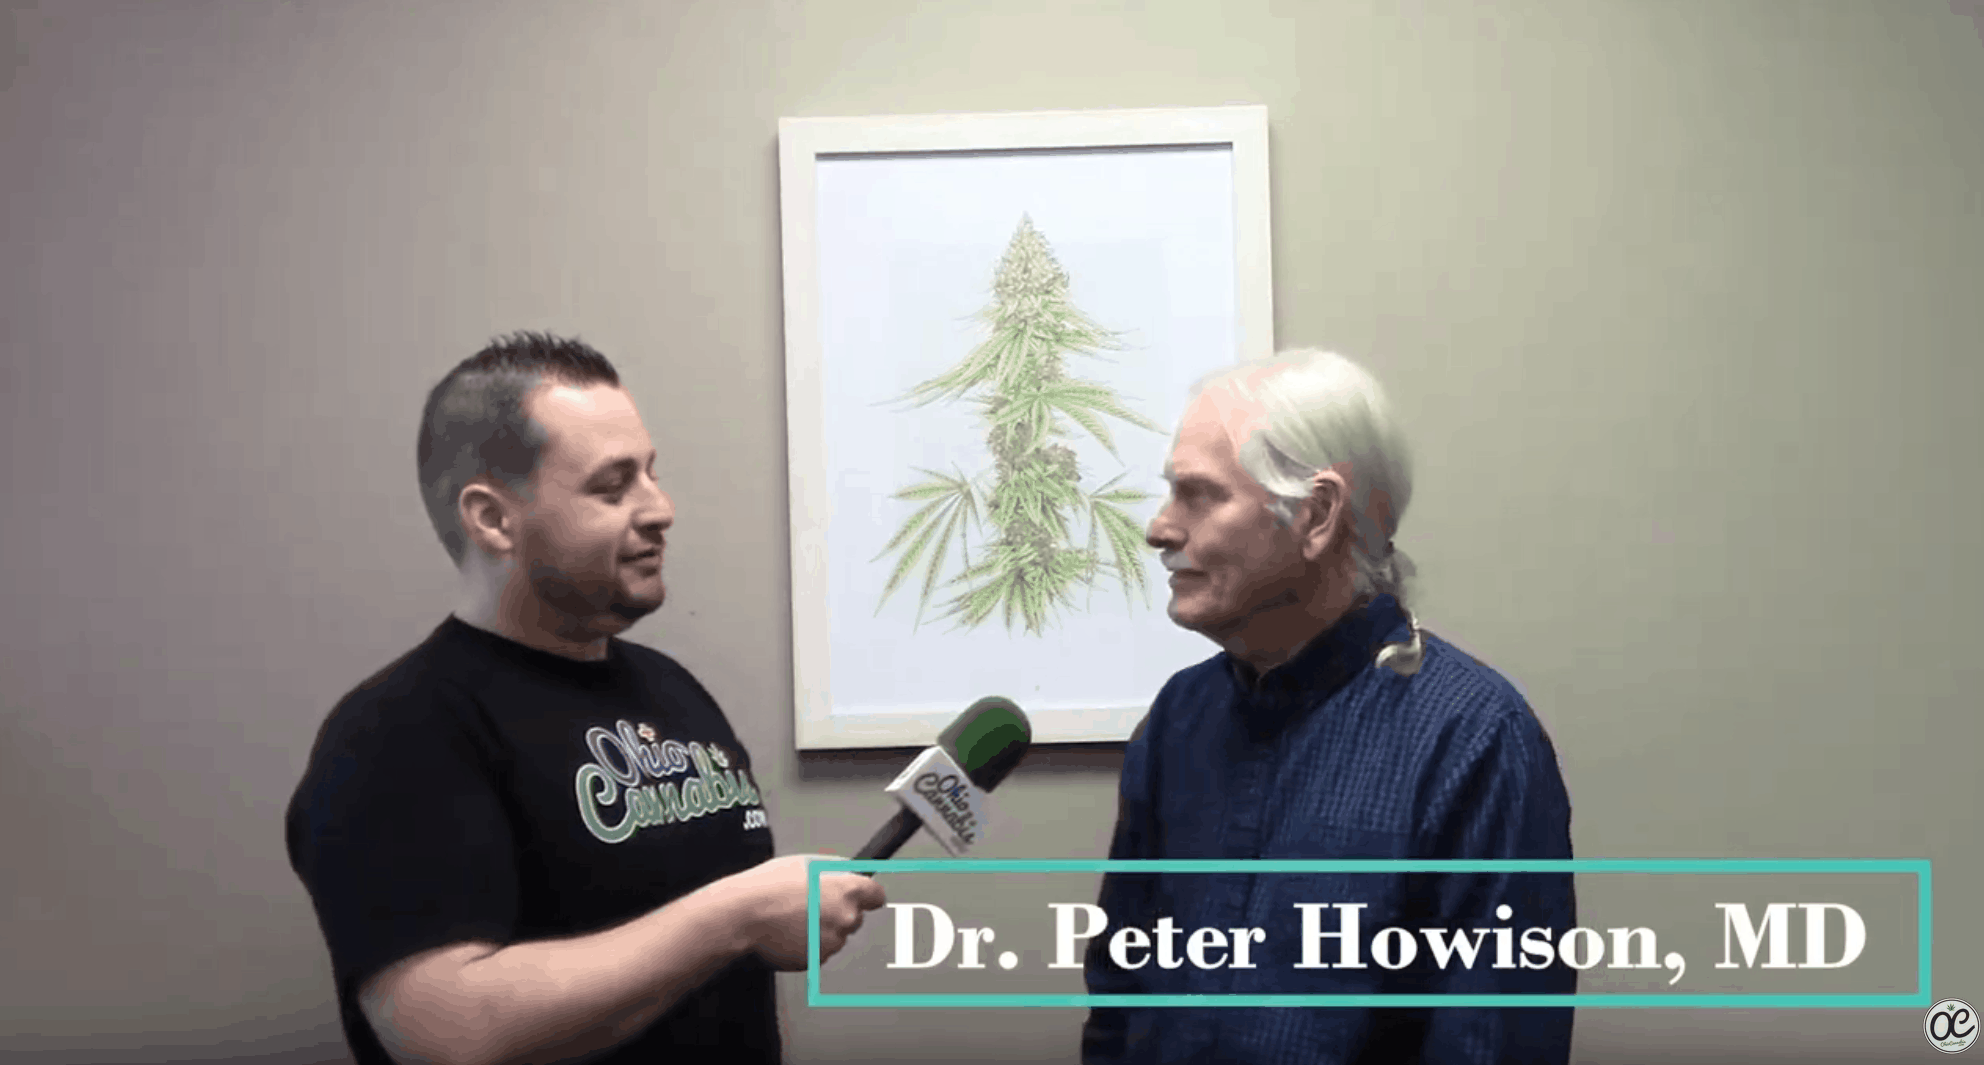 Dr. Peter Howison, M.D. & Johnny